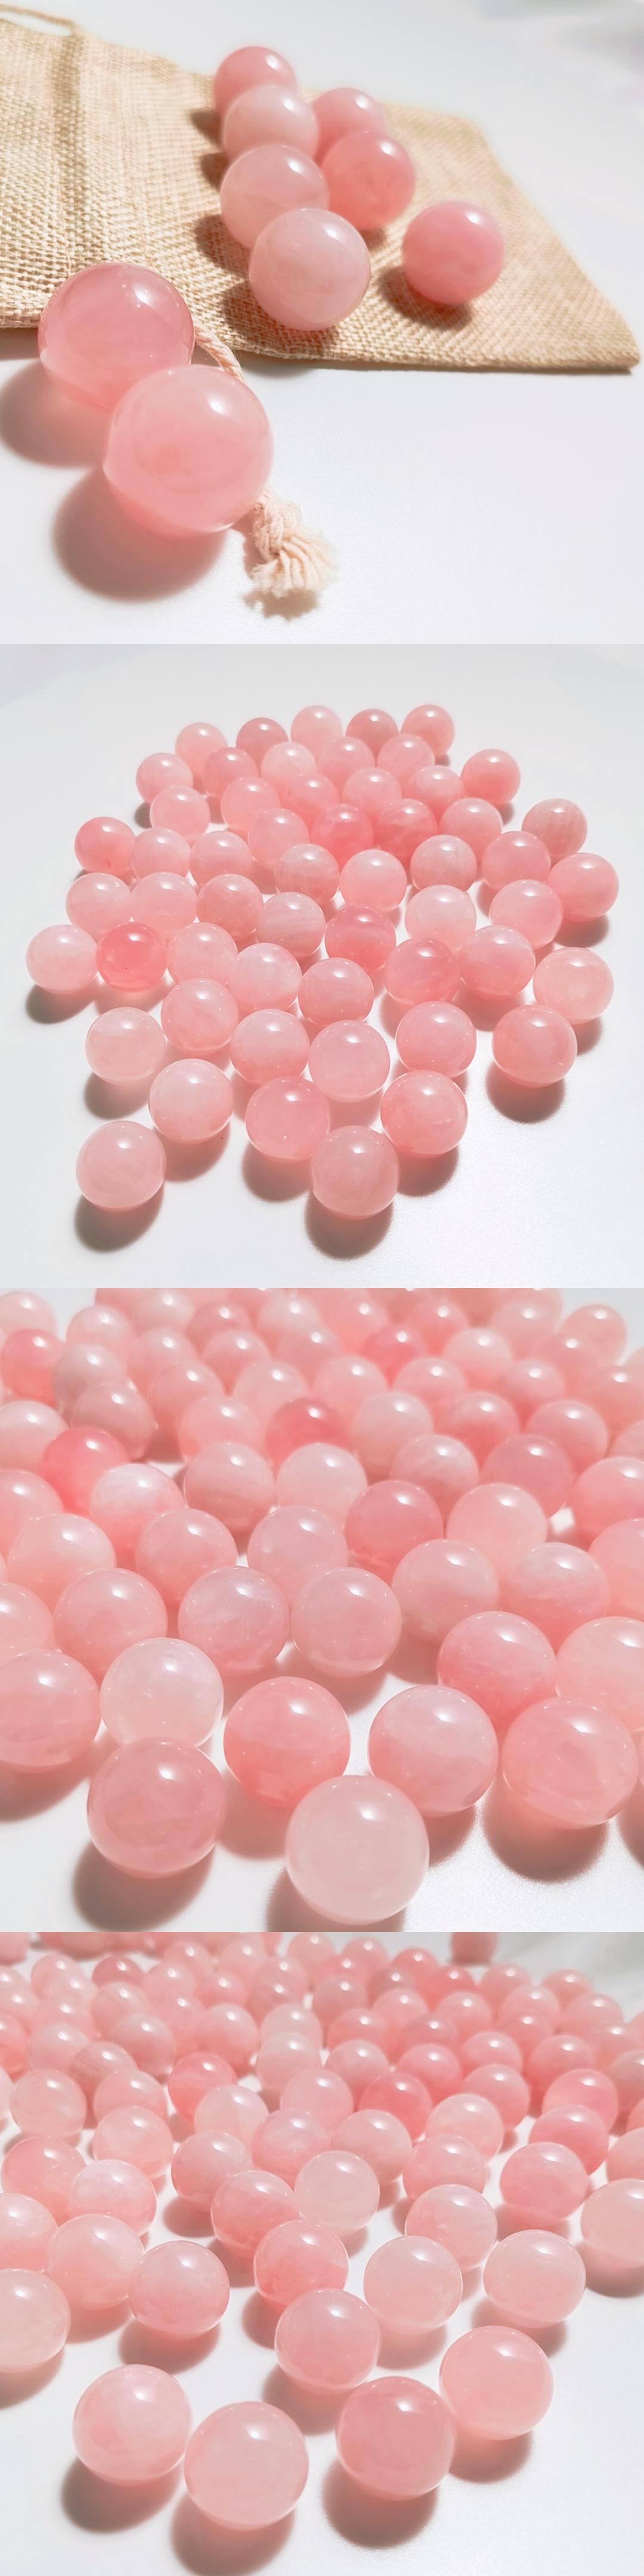 Best high quality therapy stone mini eye care rose quartz nephrite anti aging facial natural jade ball eye roller